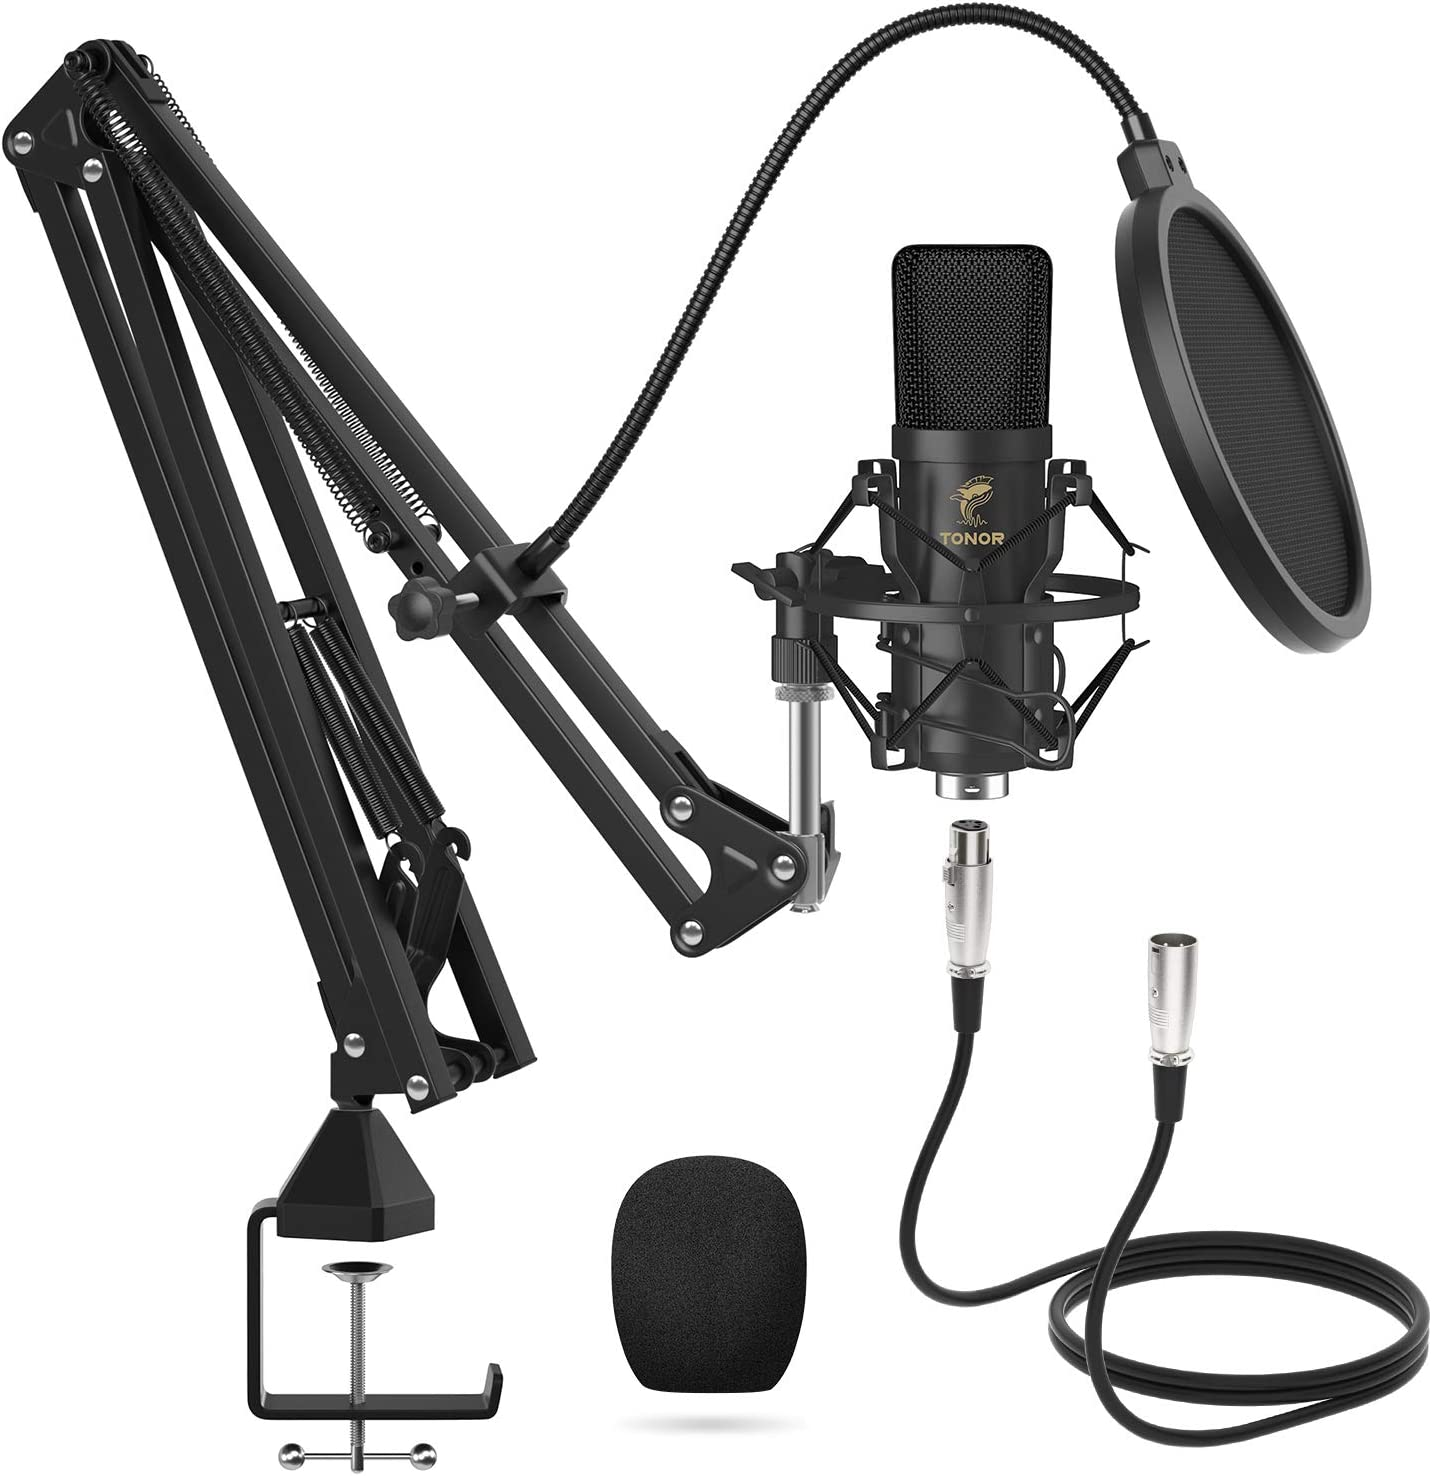 XLR Condenser Microphone, TONOR Professional Cardioid Studio Mic Kit with T20 Boom Arm, Shock Mount, Pop Filter for Recording, Podcasting, Voice Over, Streaming, Home Studio, YouTube (TC20): Computers & Accessories